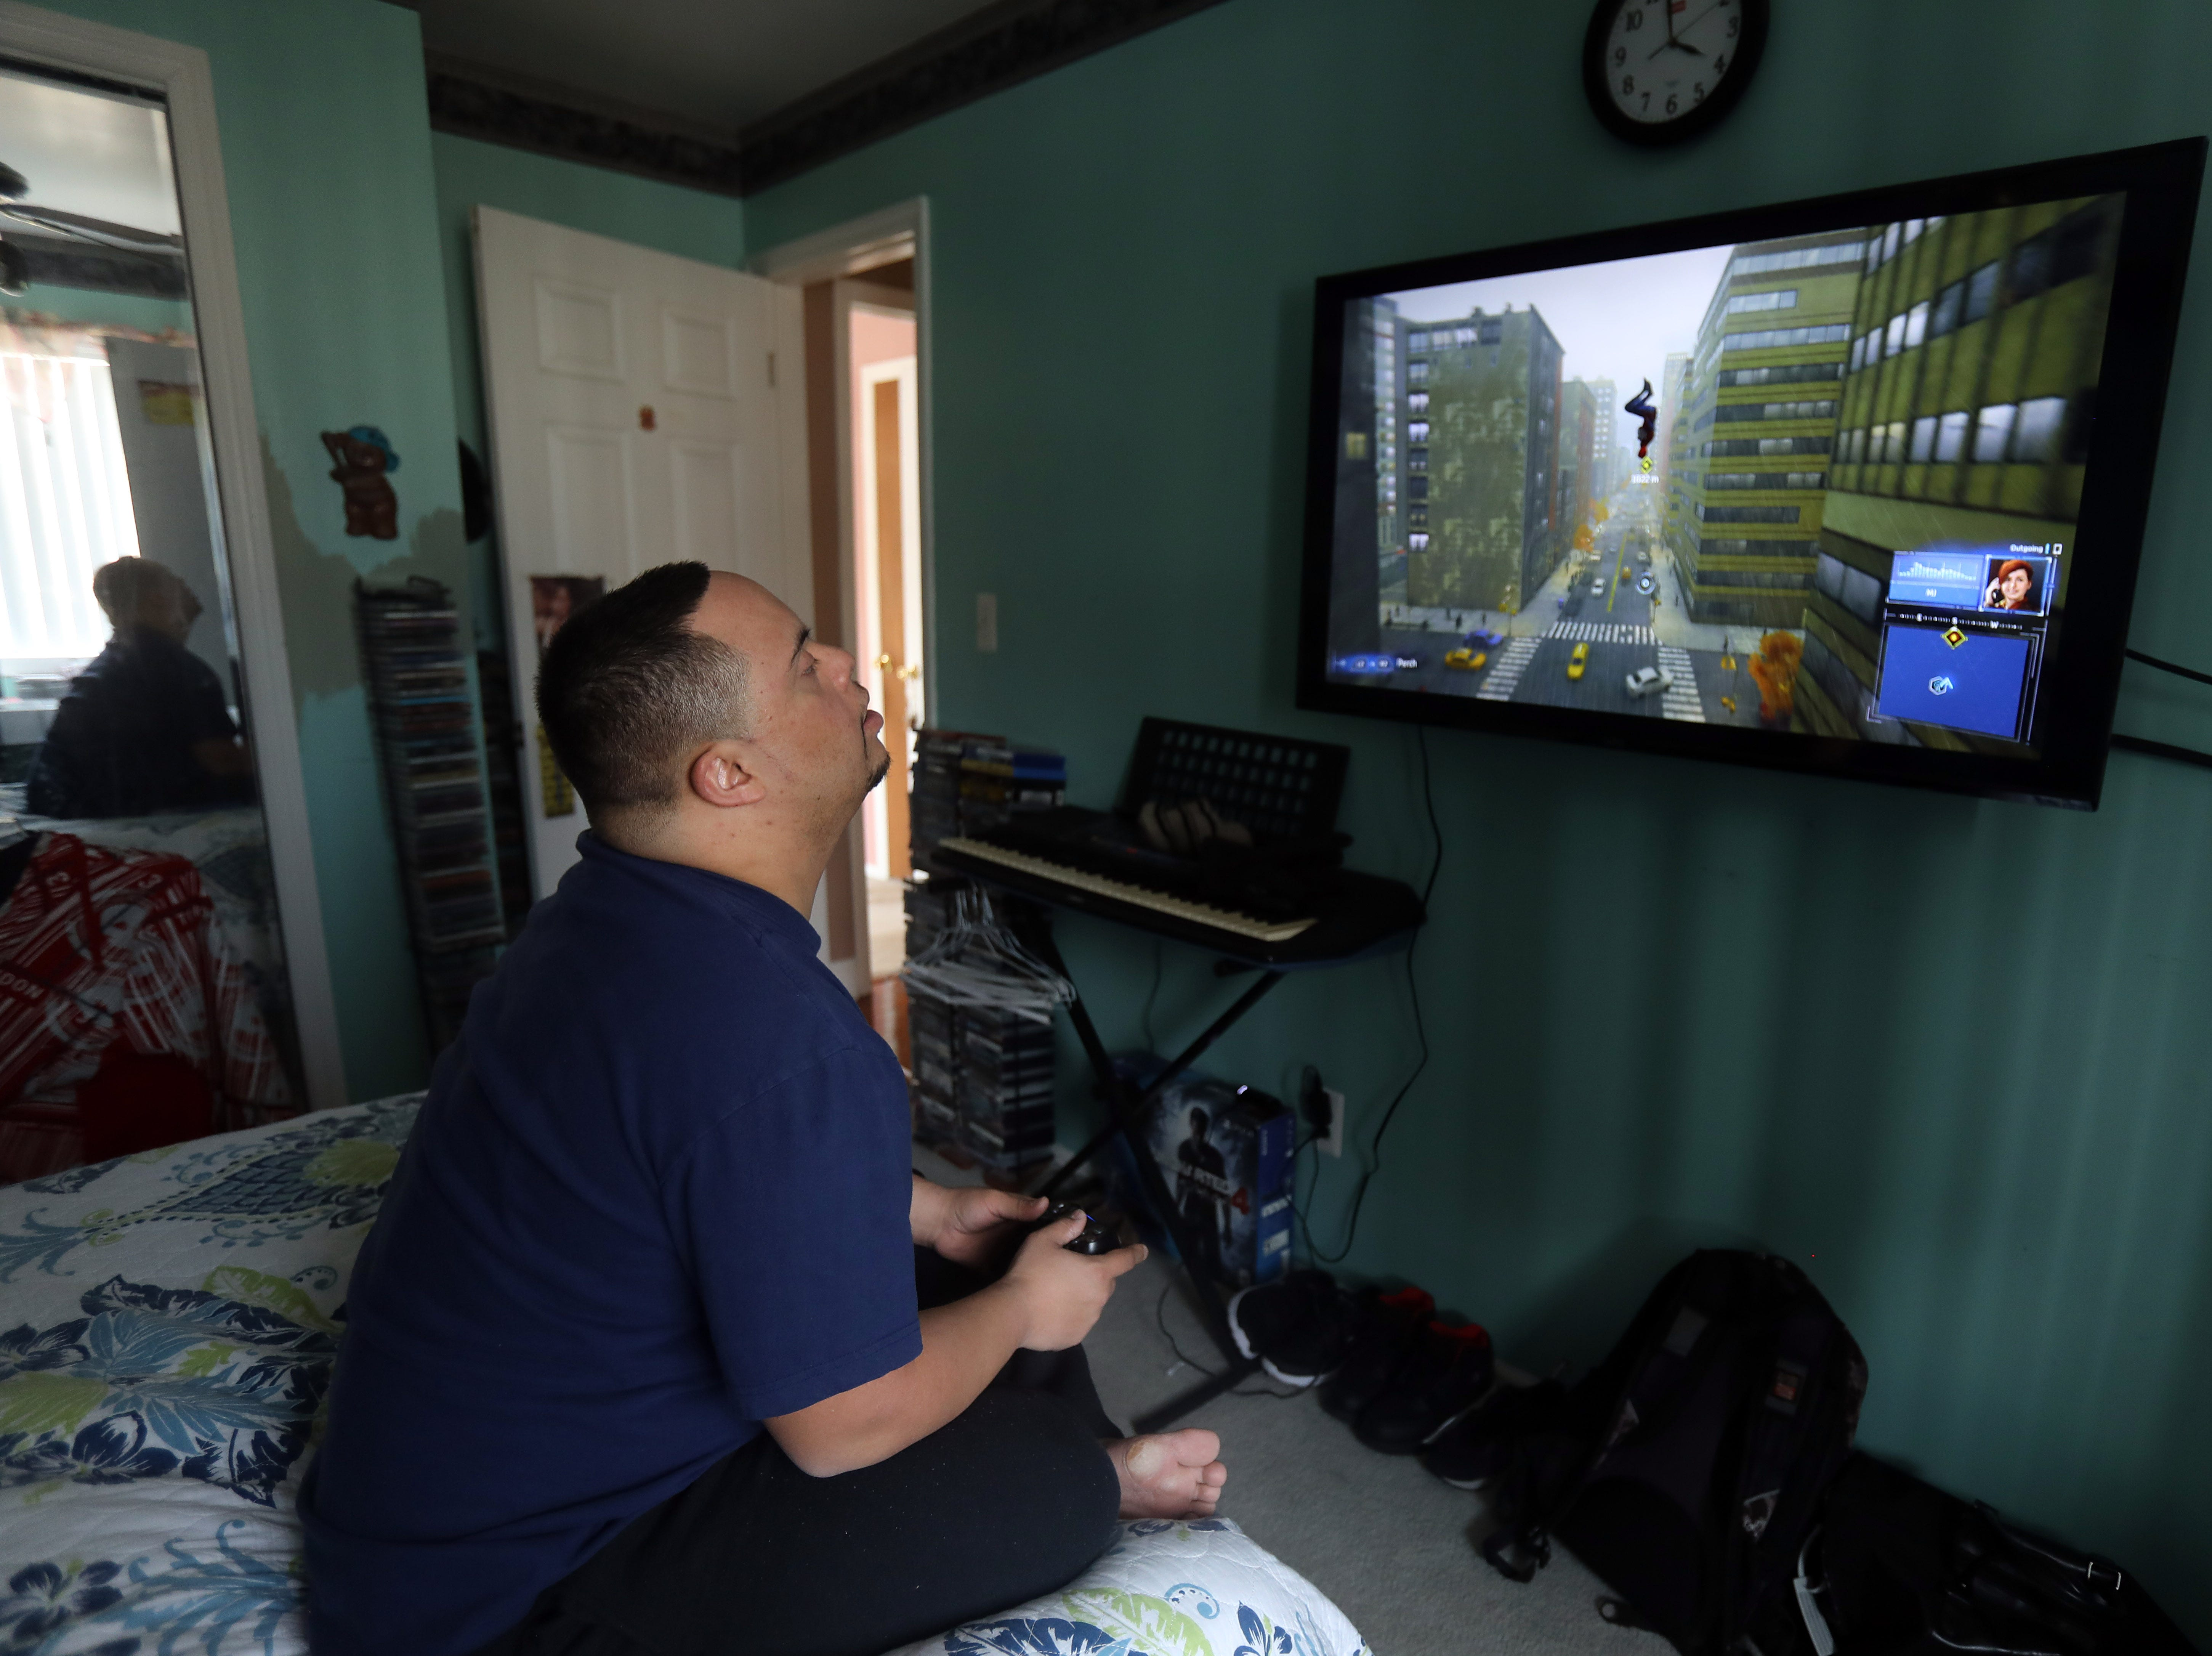 Anthony Mundy, 29 plays Spider-Man on his Playstation 4 in his bedroom in Spring Valley March 15, 2019.